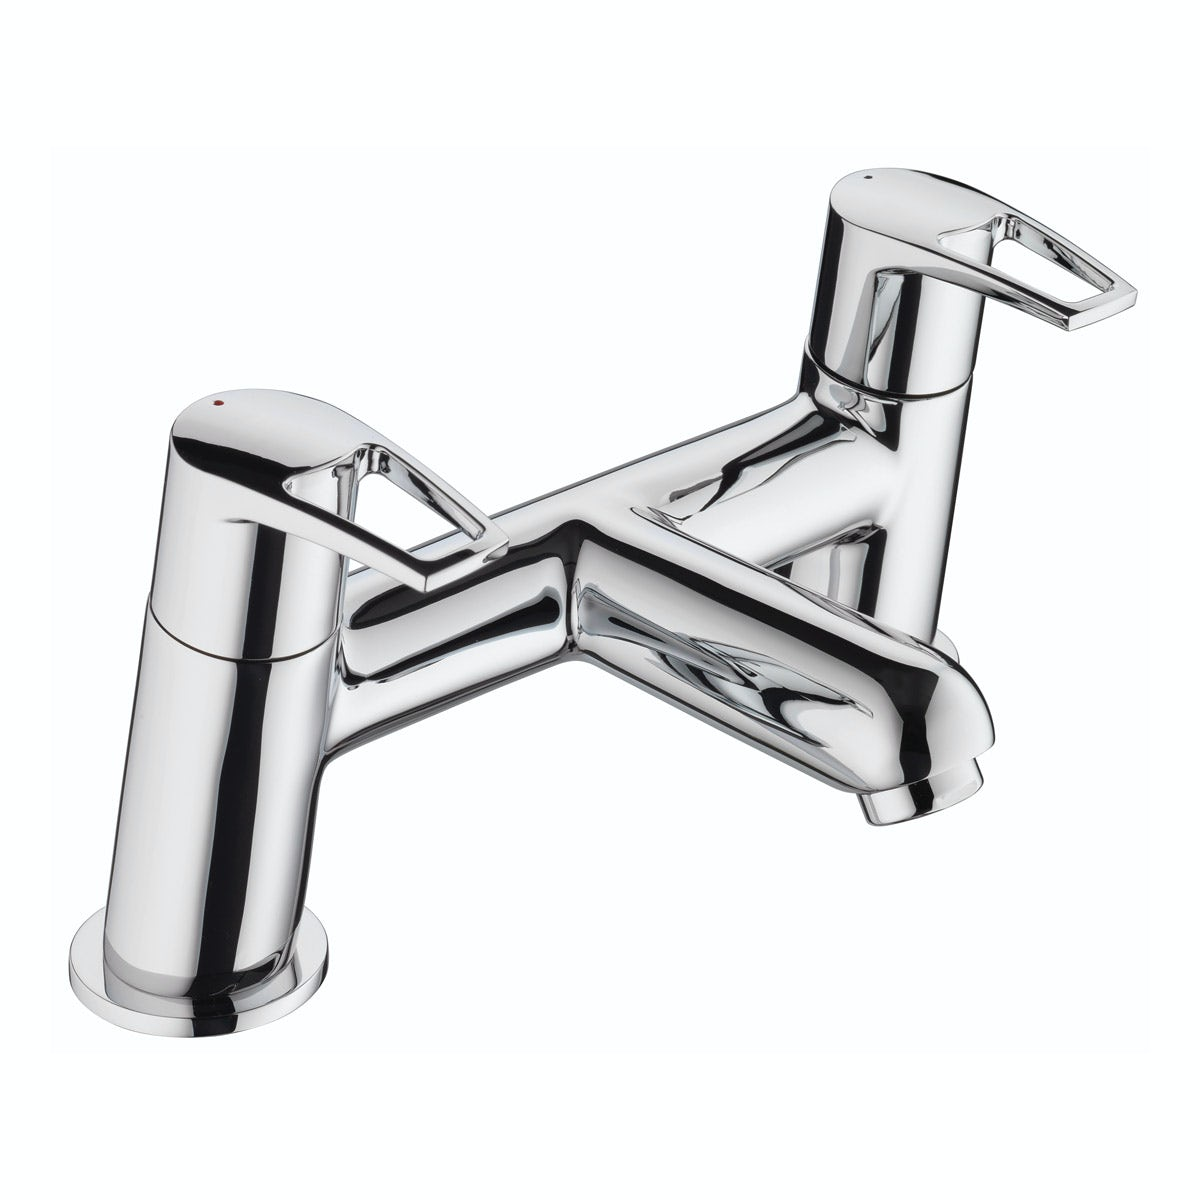 Bristan Smile bath mixer tap